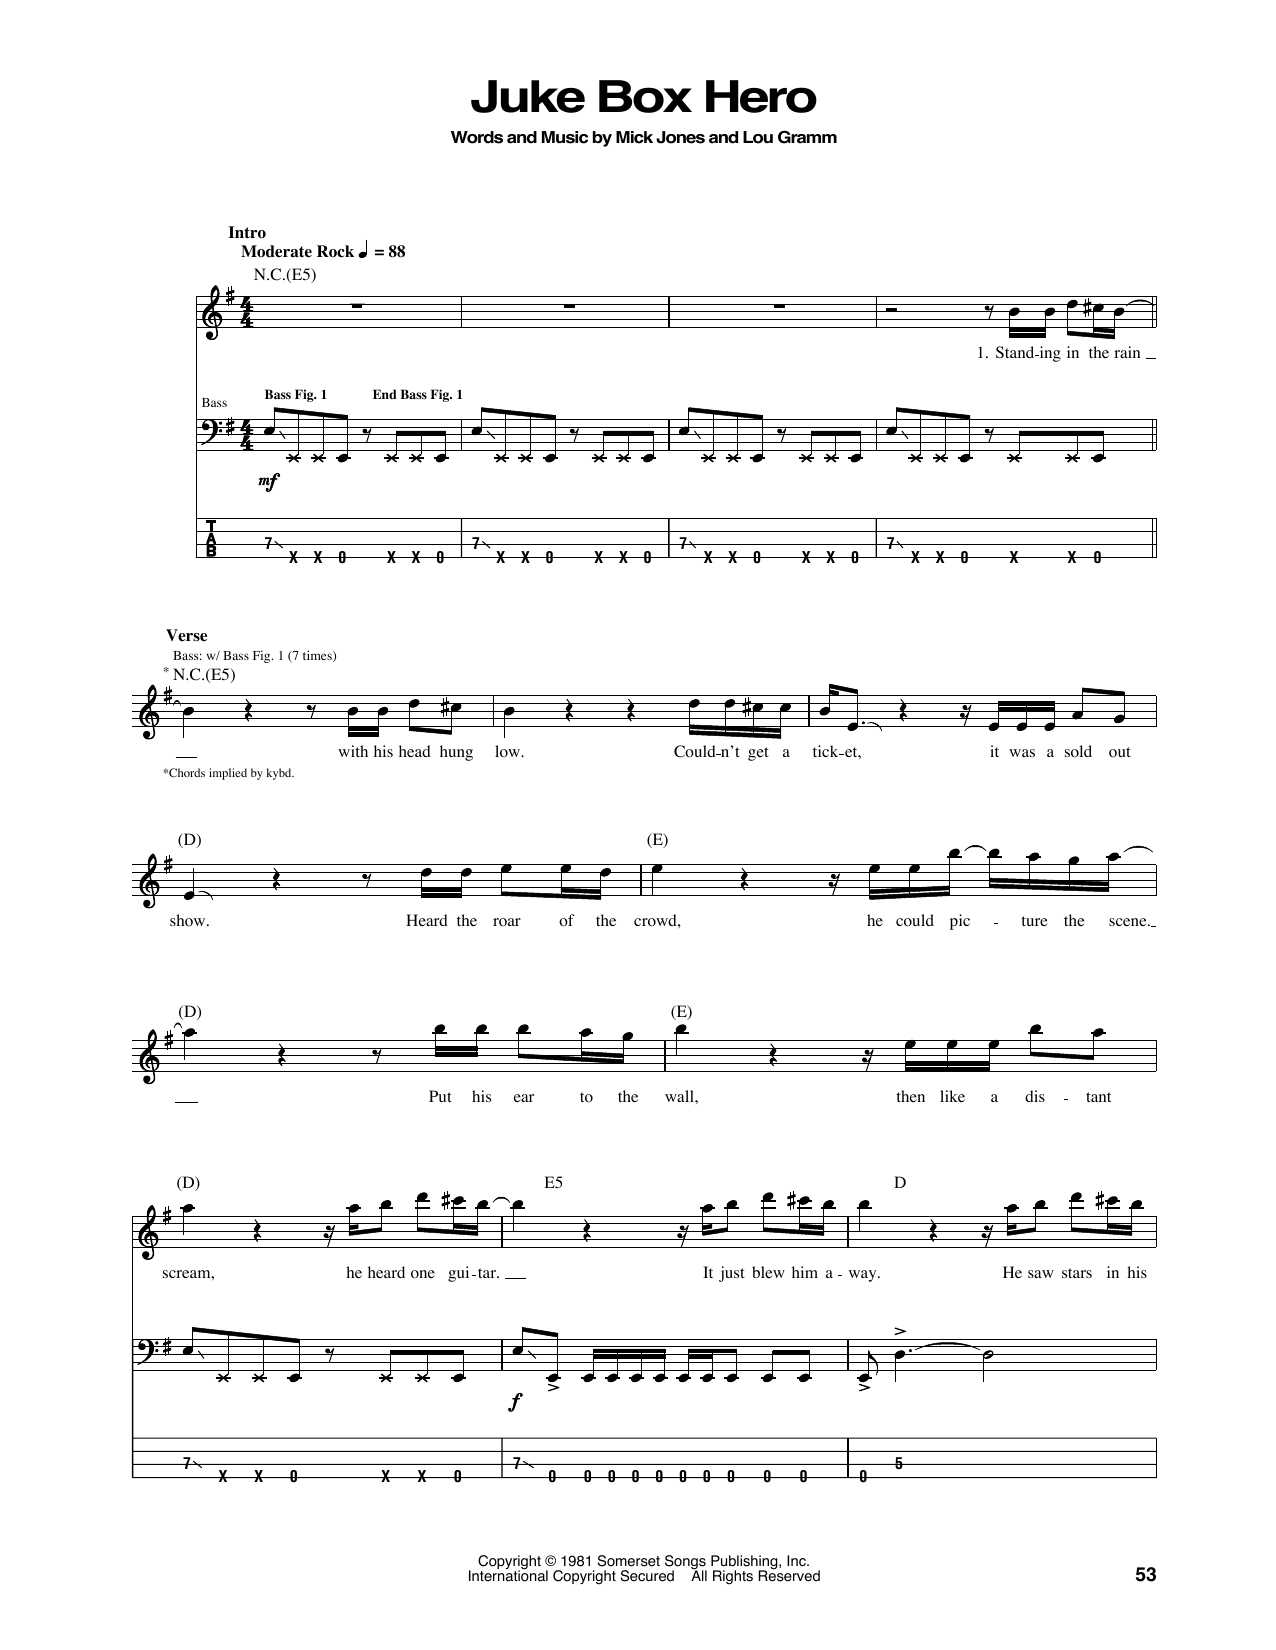 Juke Box Hero Sheet Music